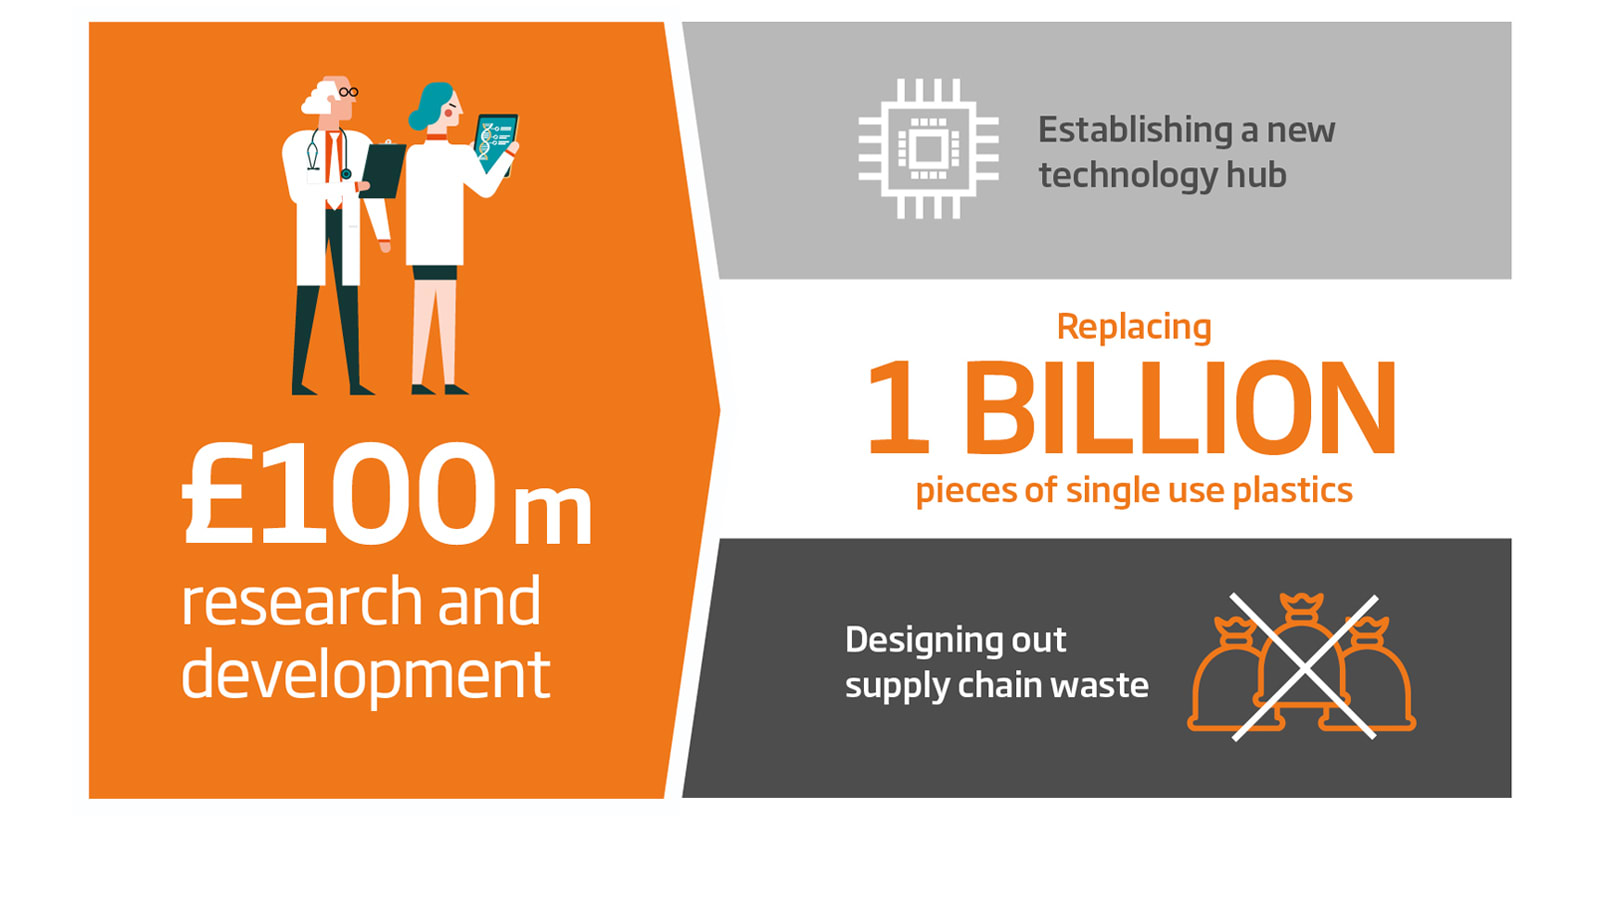 We're accelerating our work in the Circular Economy with a £100m R&D investment over 5 years